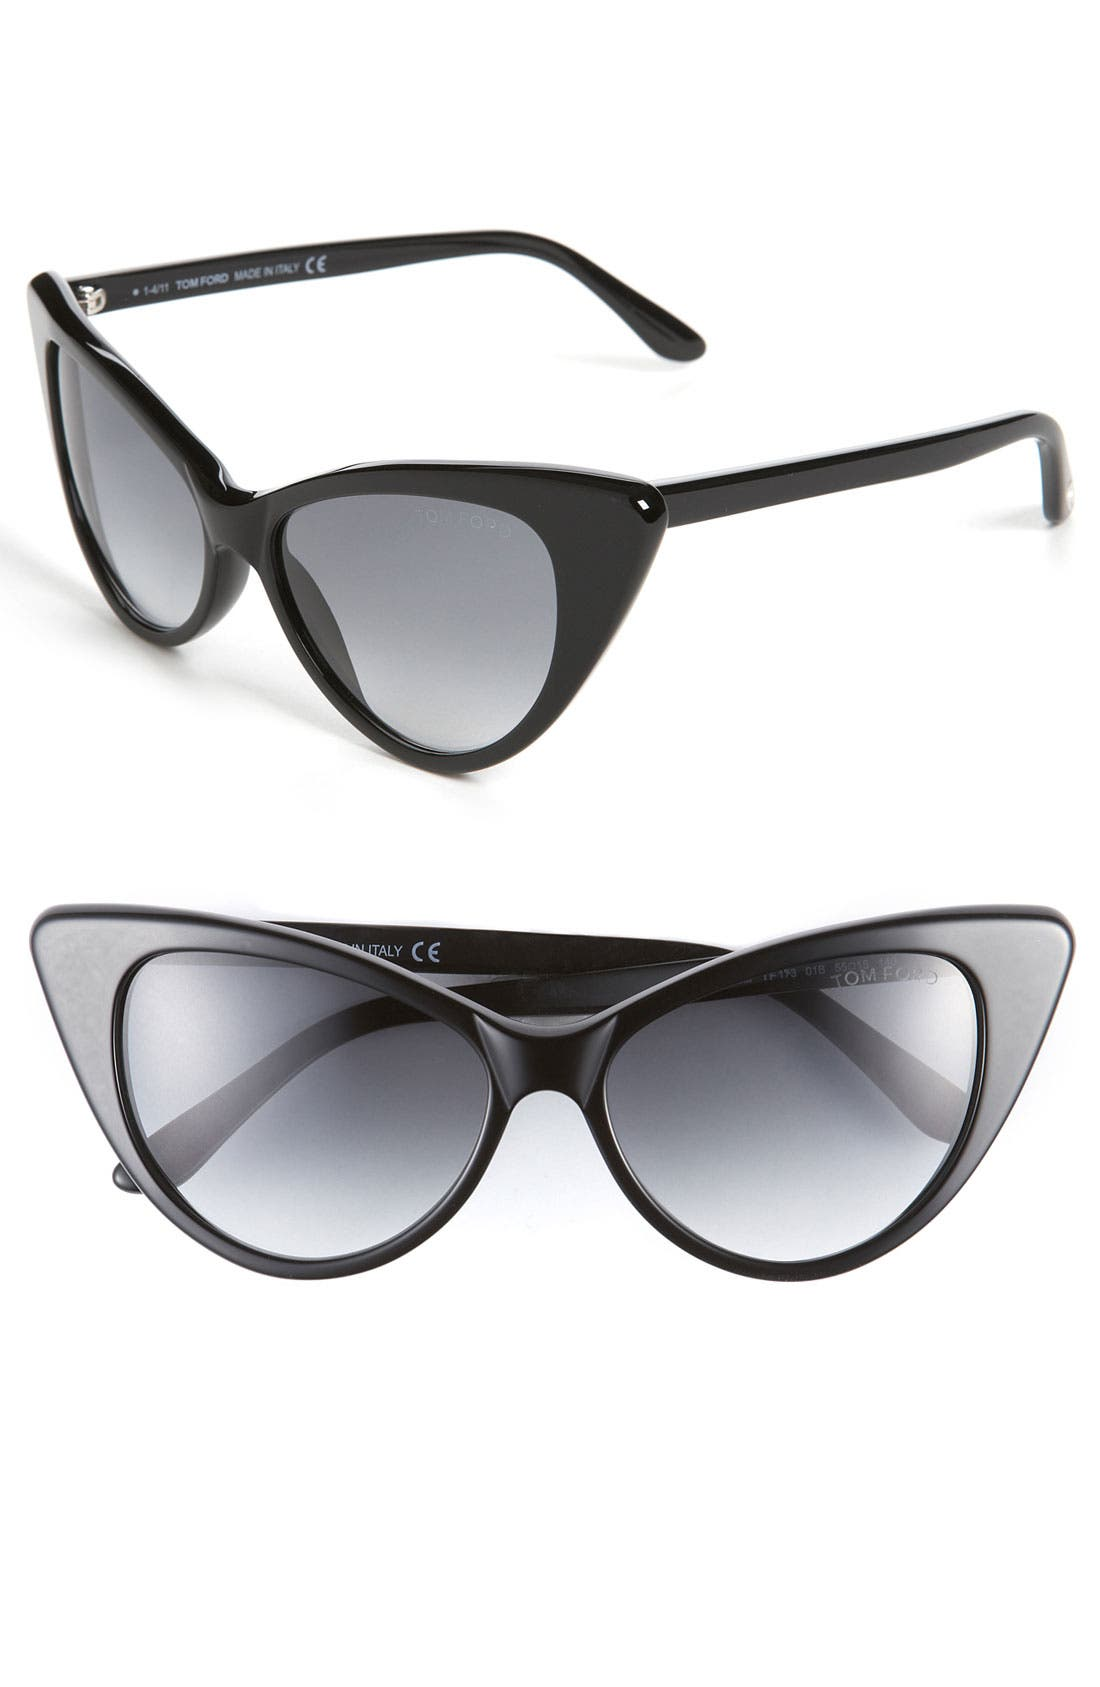 Main Image - Tom Ford Plastic Cat's Eye Sunglasses